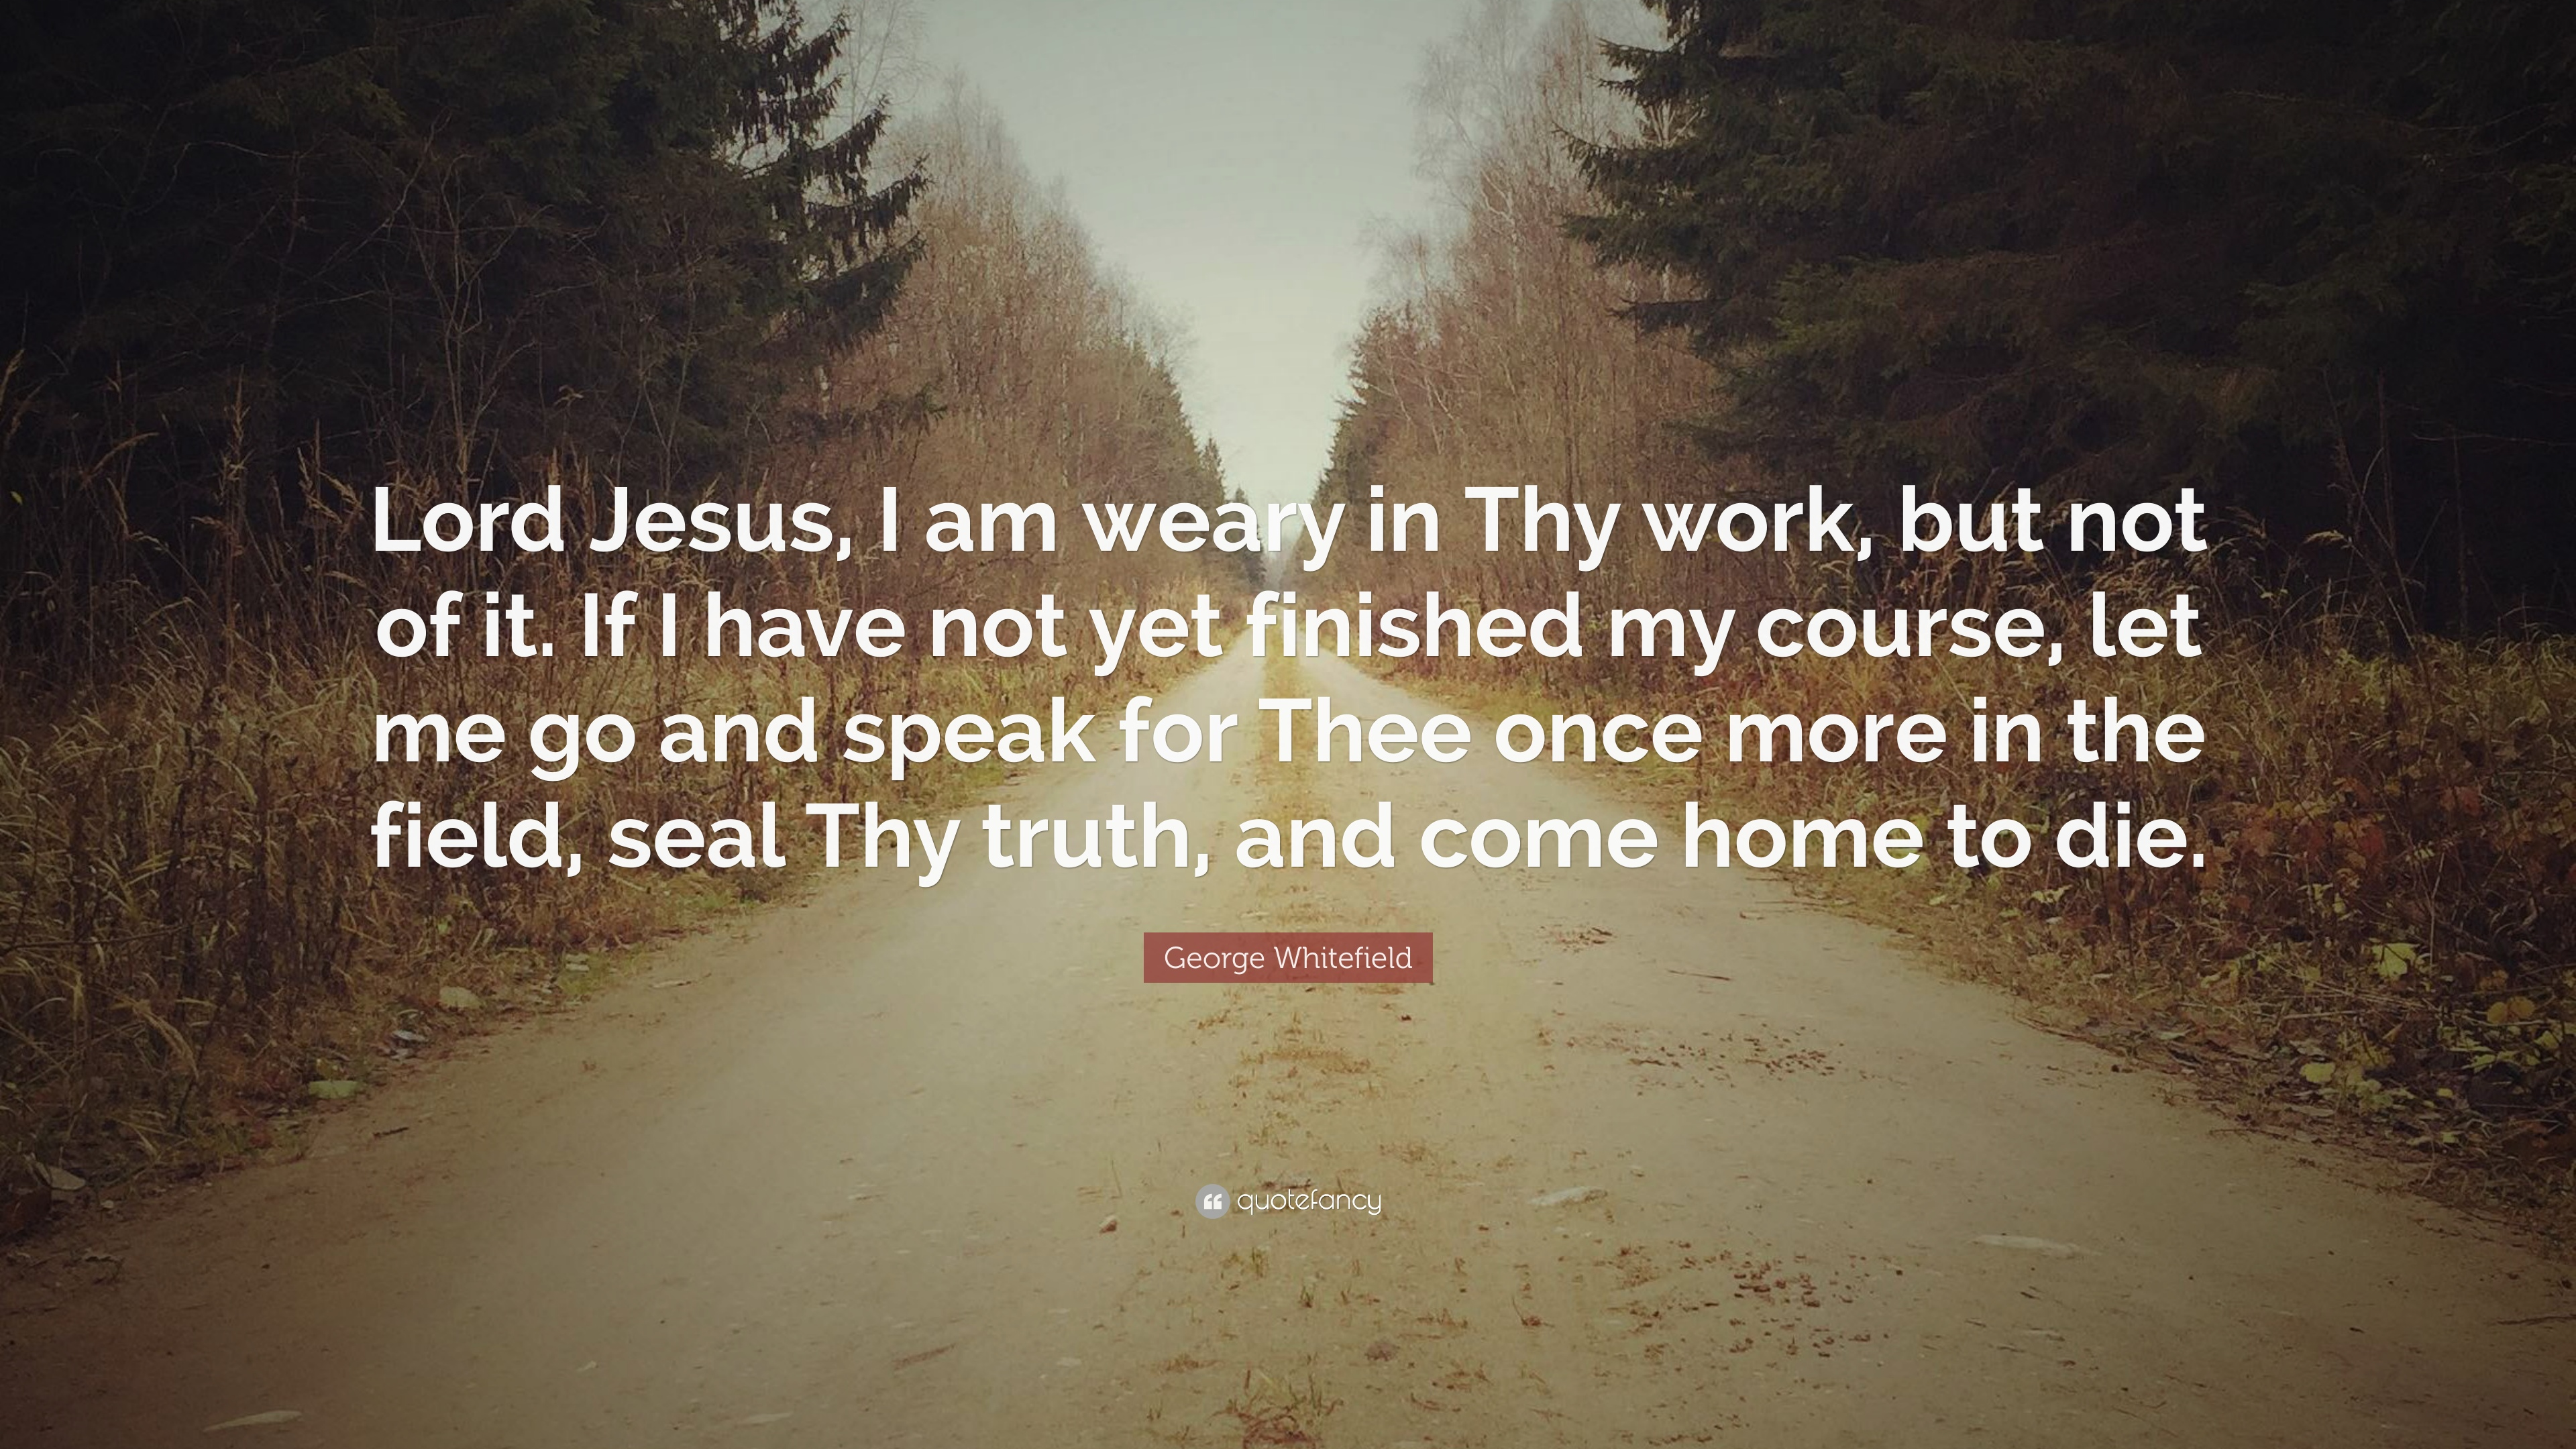 george whitefield quote lord jesus i am weary in thy work but